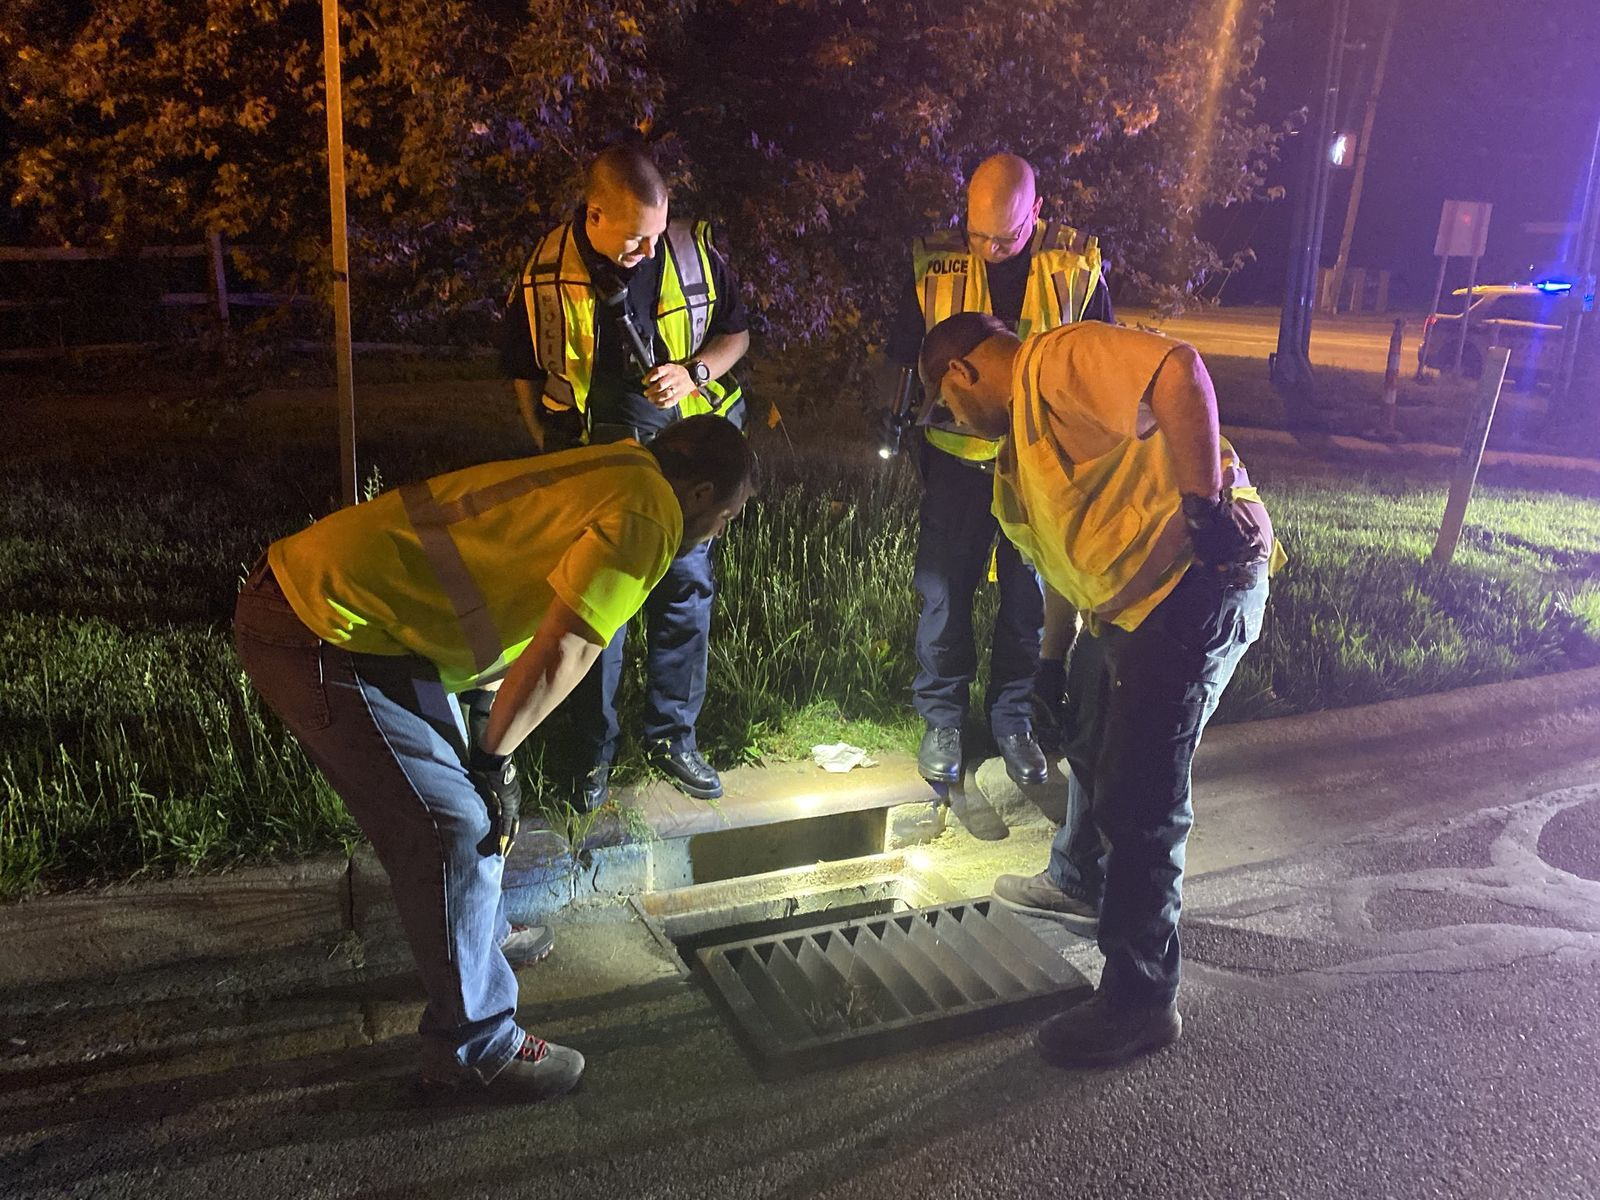 Westerville police and members of the Westerville Service Department rescued three ducklings that were stuck in a storm drain Wednesday night. (Westerville Police Department)